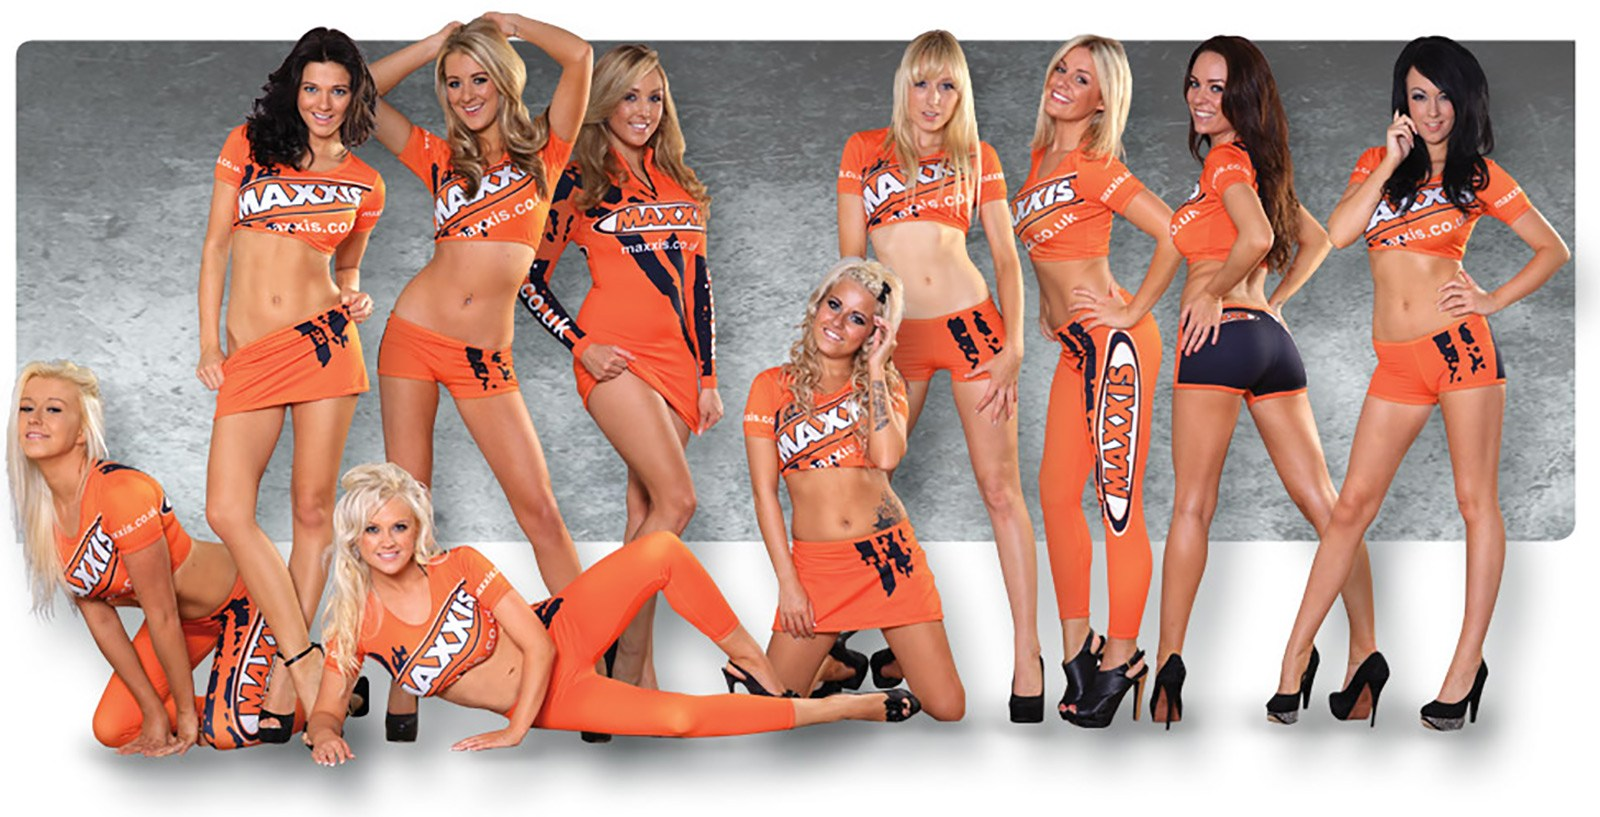 maxxis_babes